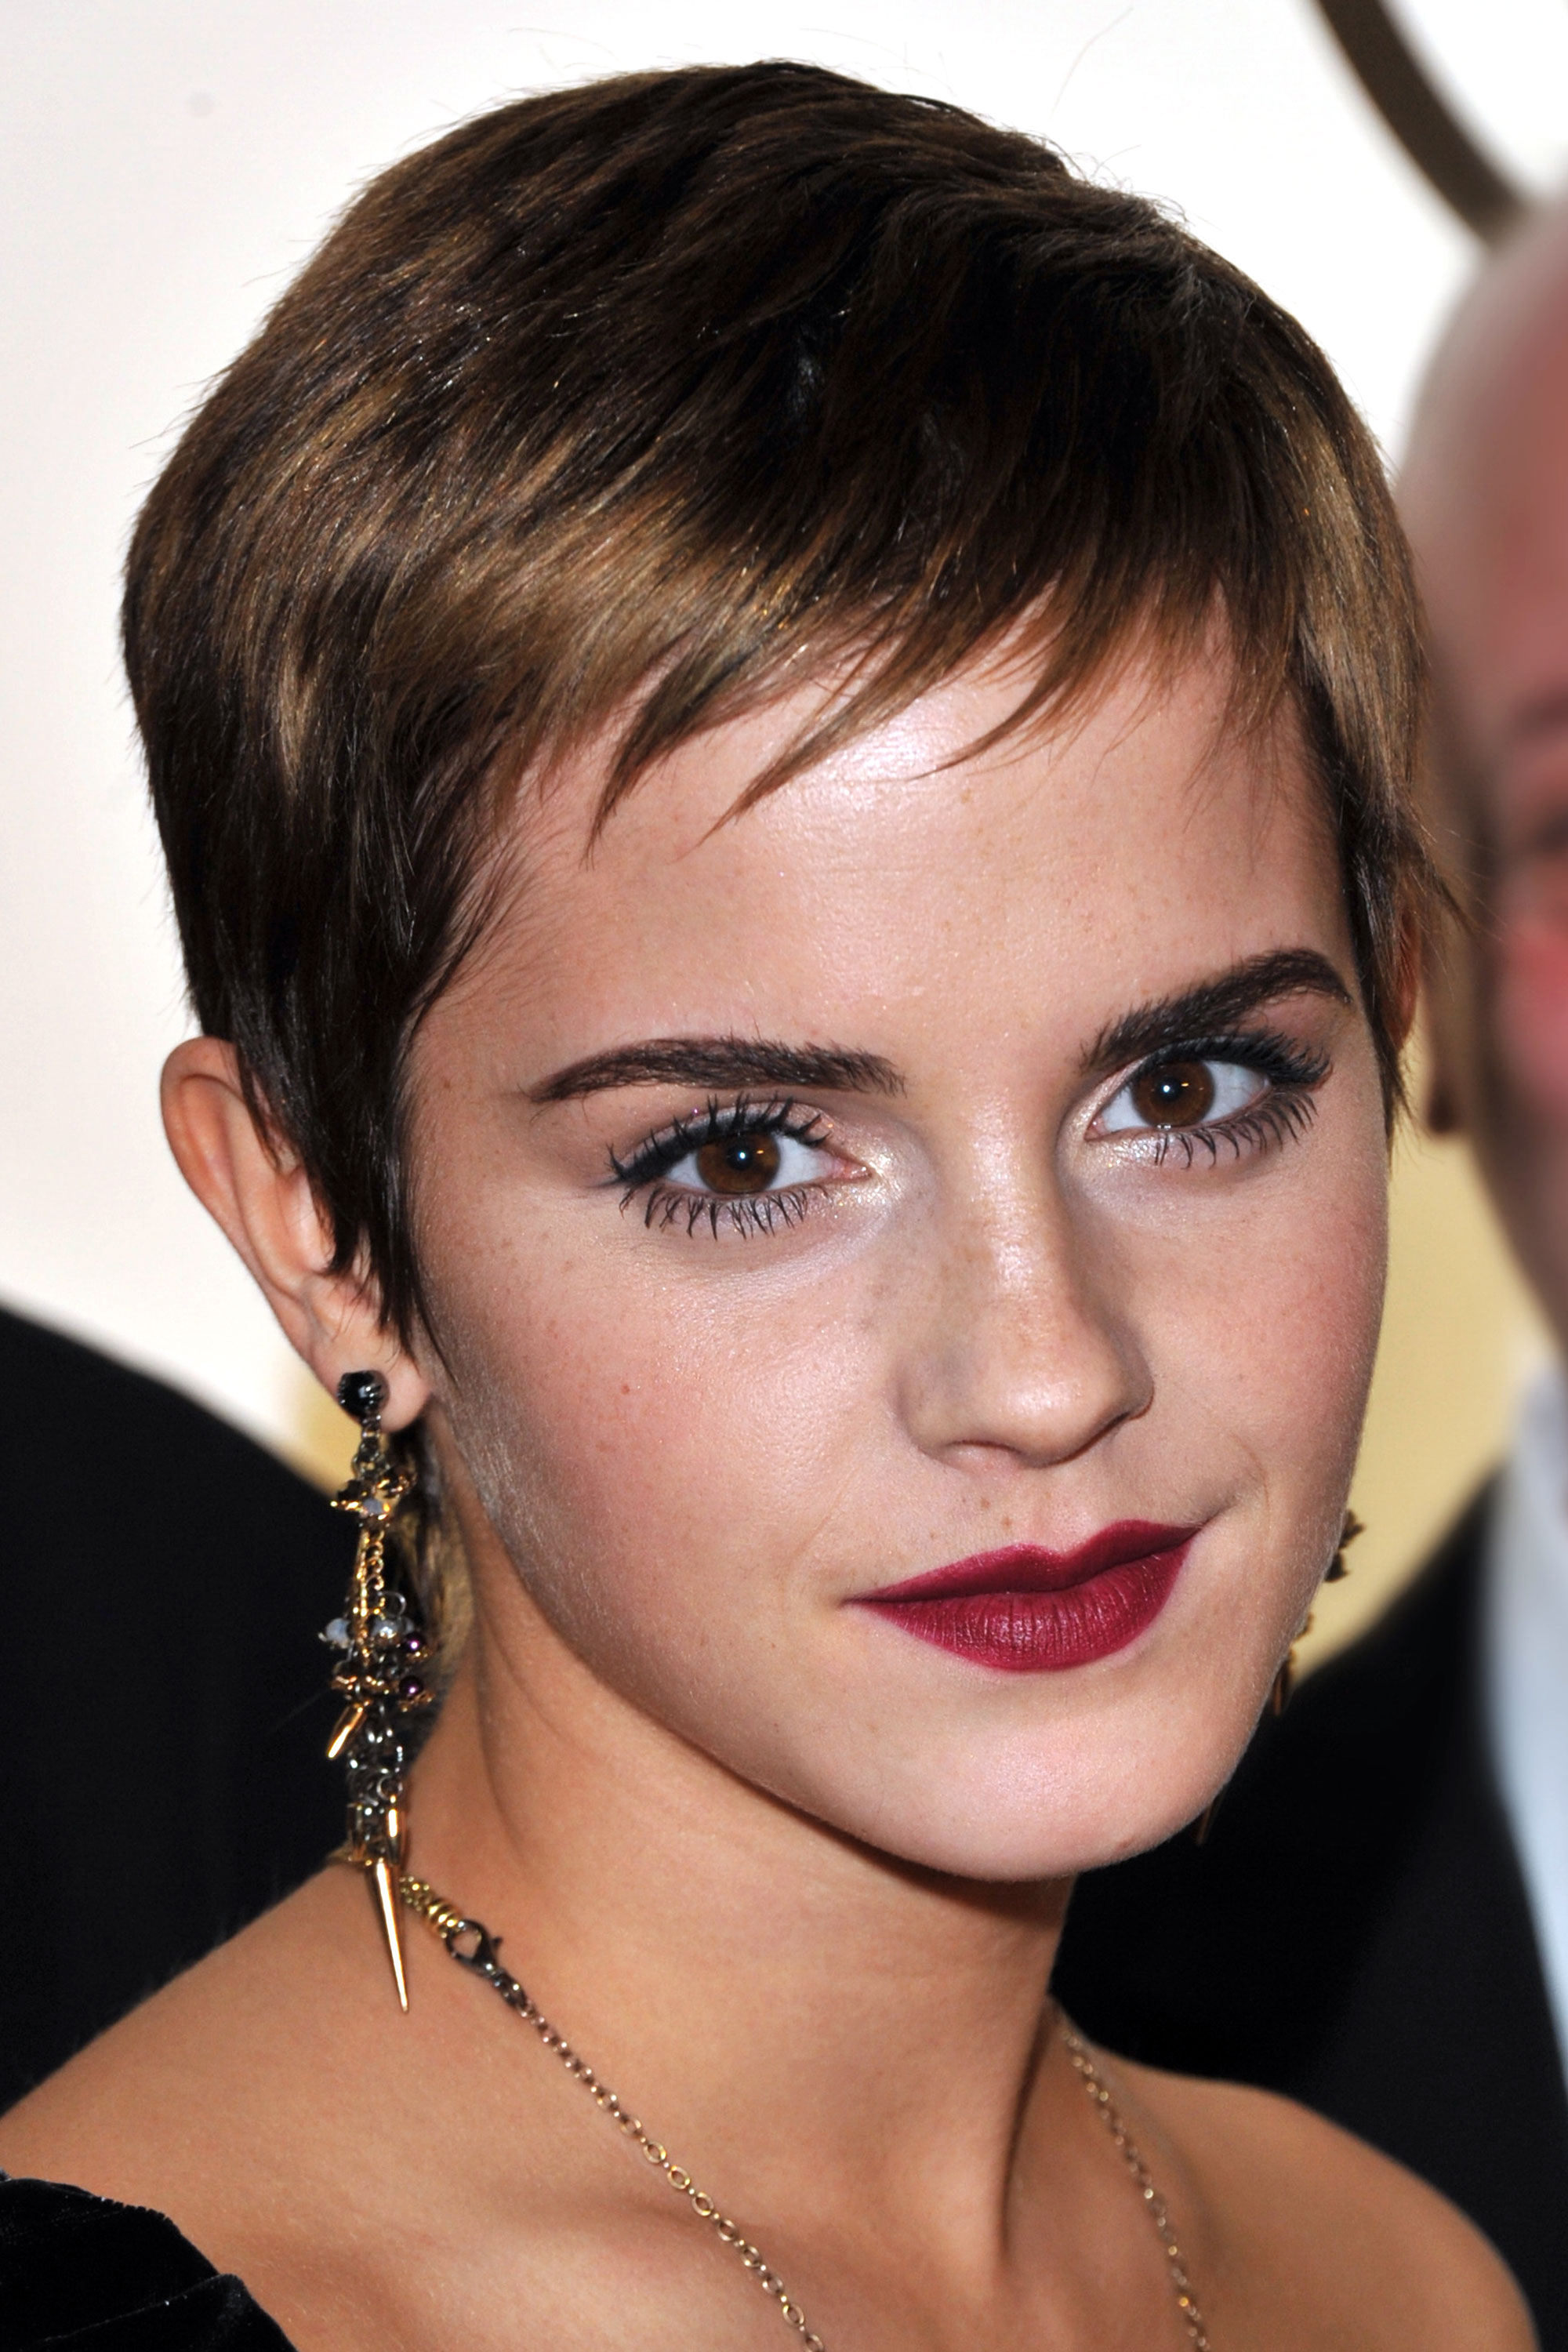 Outstanding 42 Pixie Cuts We Love For 2017 Short Pixie Hairstyles From Short Hairstyles Gunalazisus